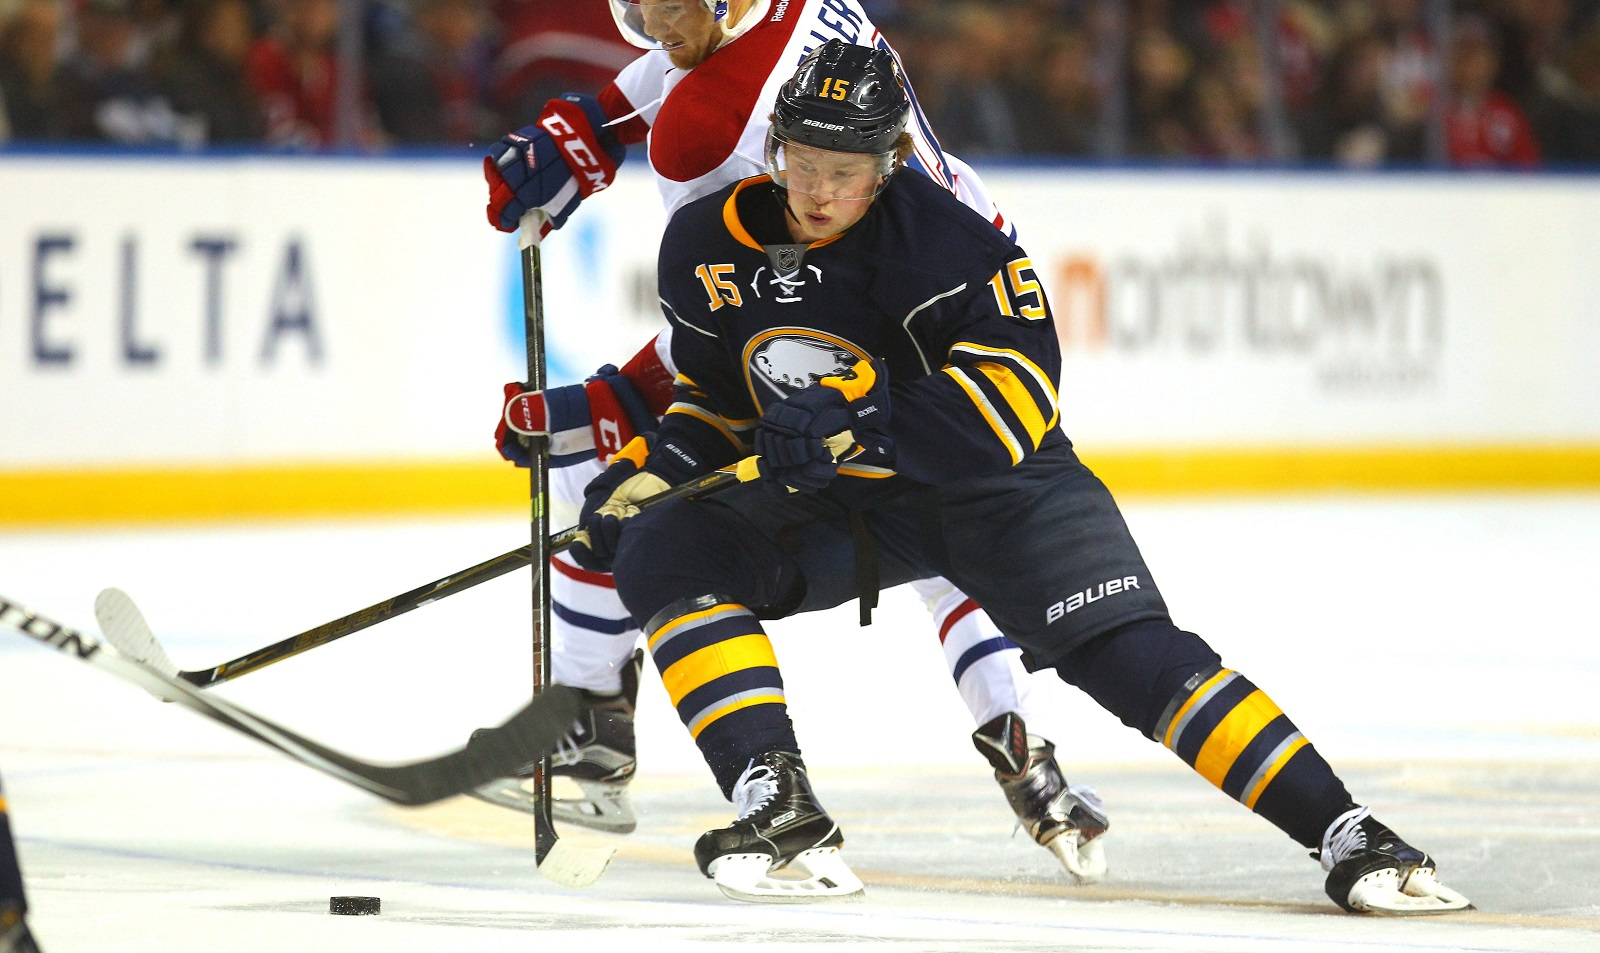 The Sabres' addition of Jack Eichel in the 2015 NHL Draft has certainly helped the team's TV rating on MSG. (Mark Mulvillle/Buffalo News file photo)